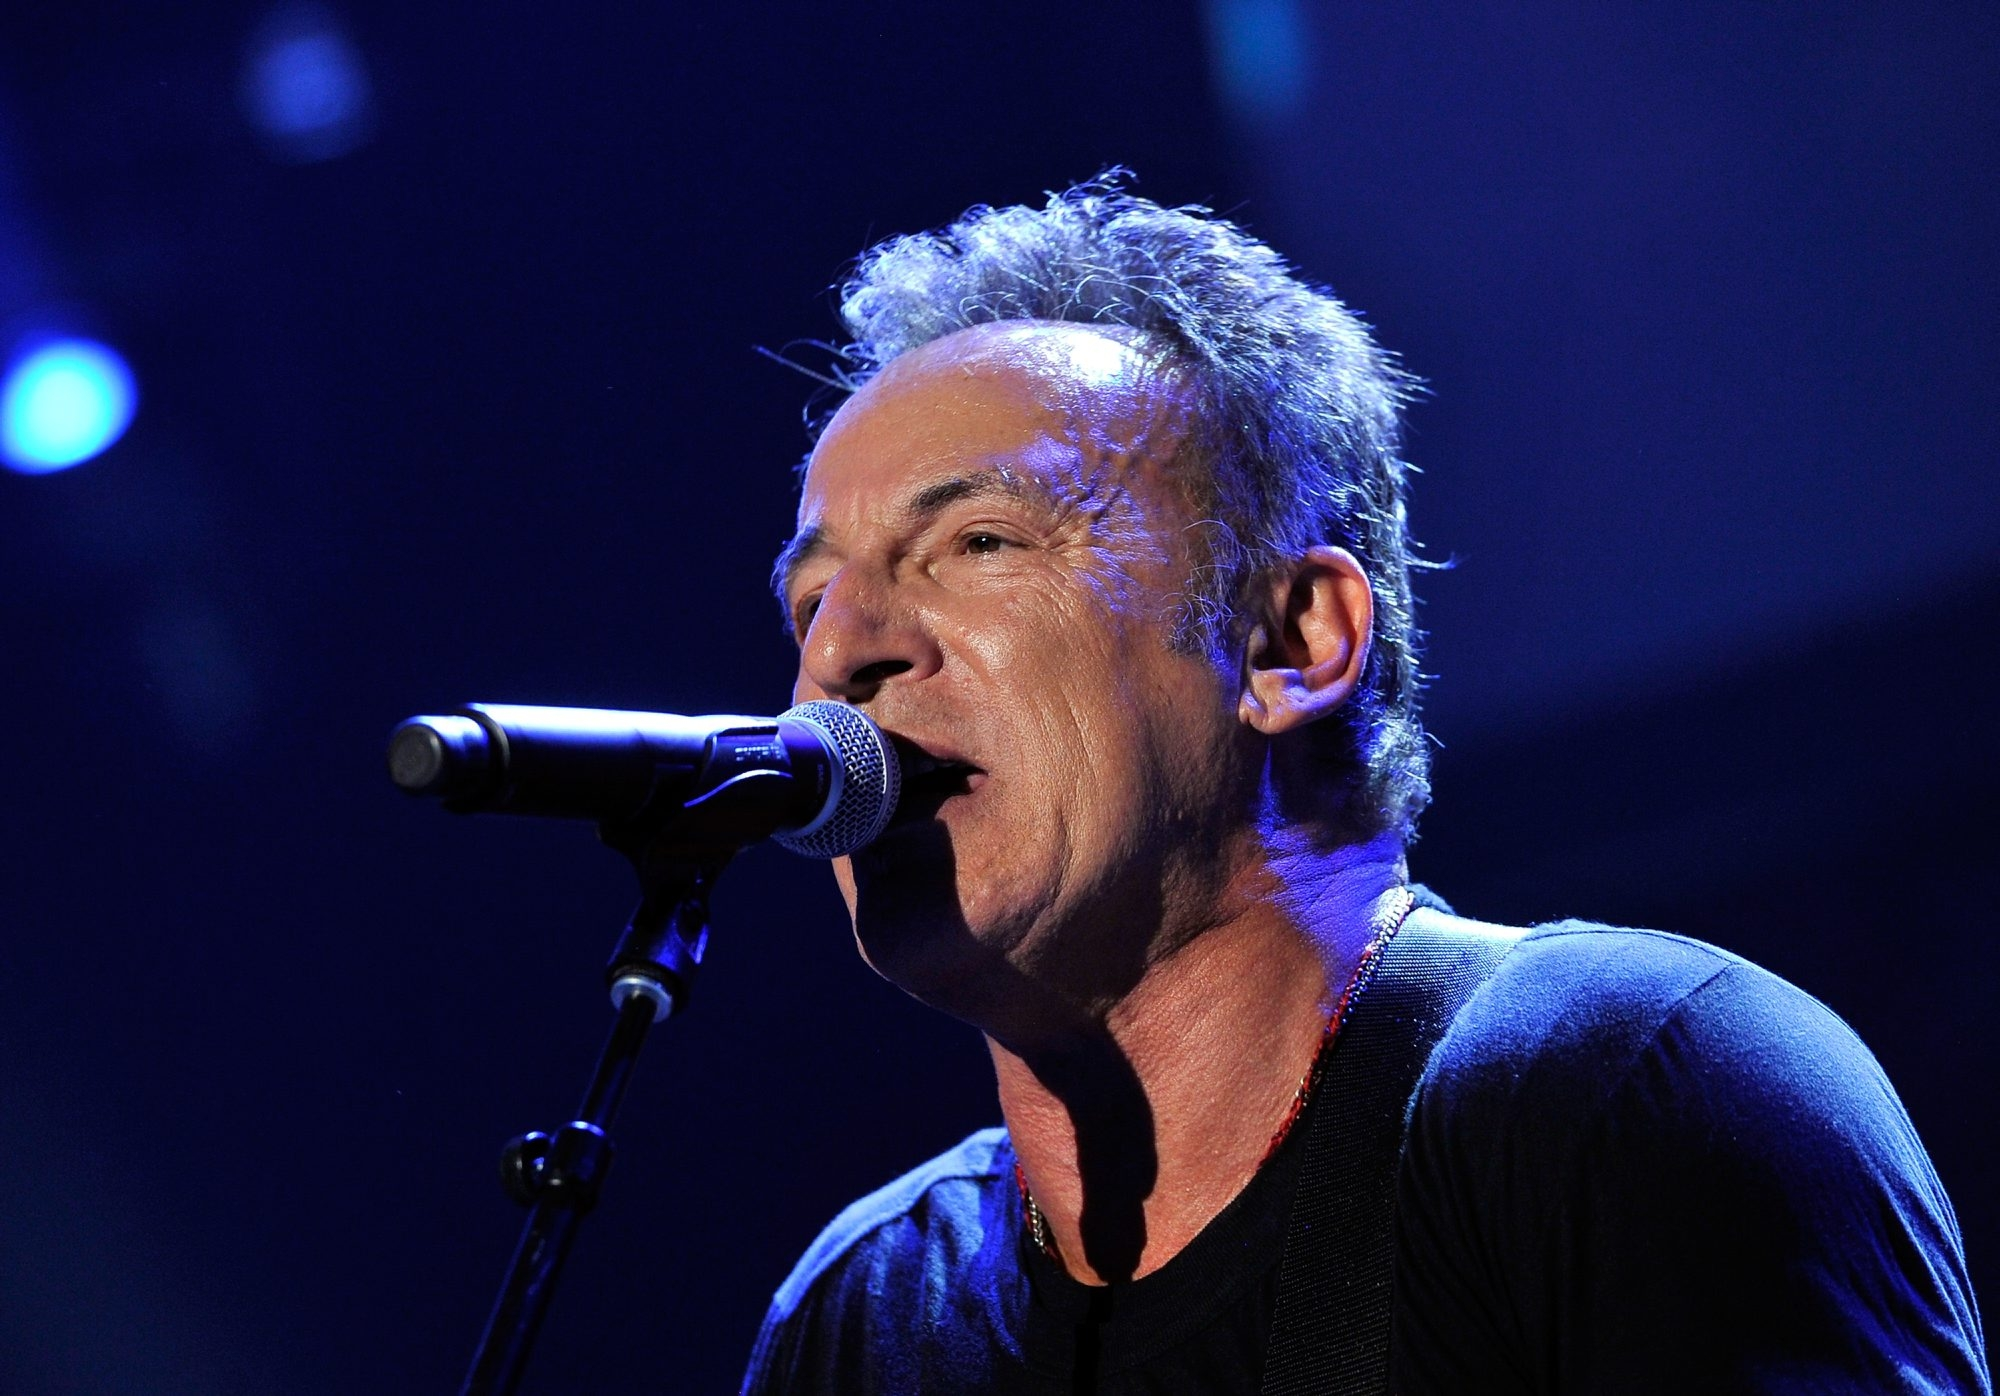 Tickets for Bruce Springsteen go on sale at 10 a.m. Dec. 11.